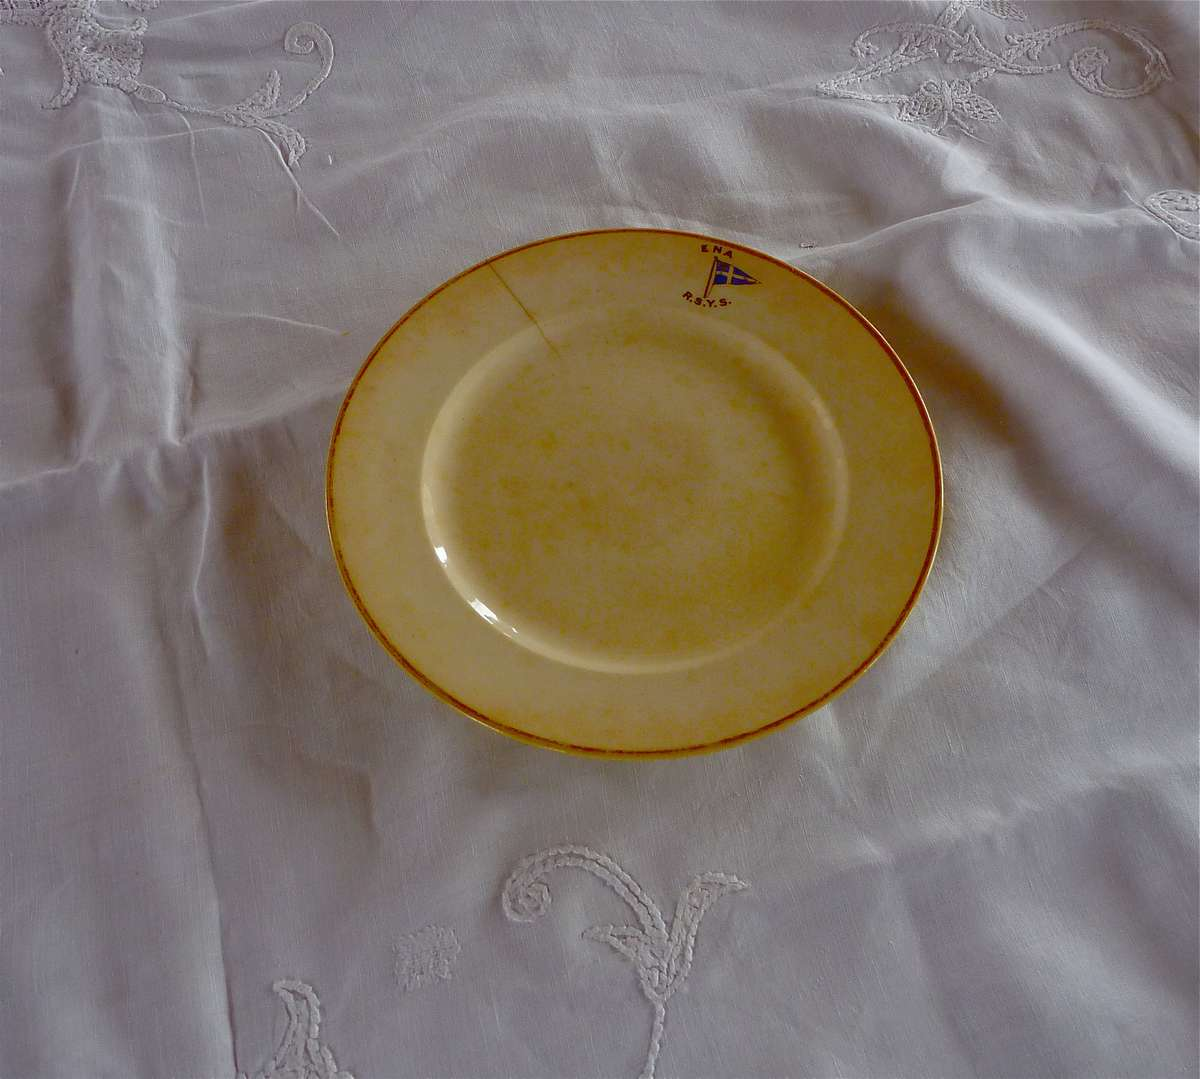 The plate on the embroidered cloth